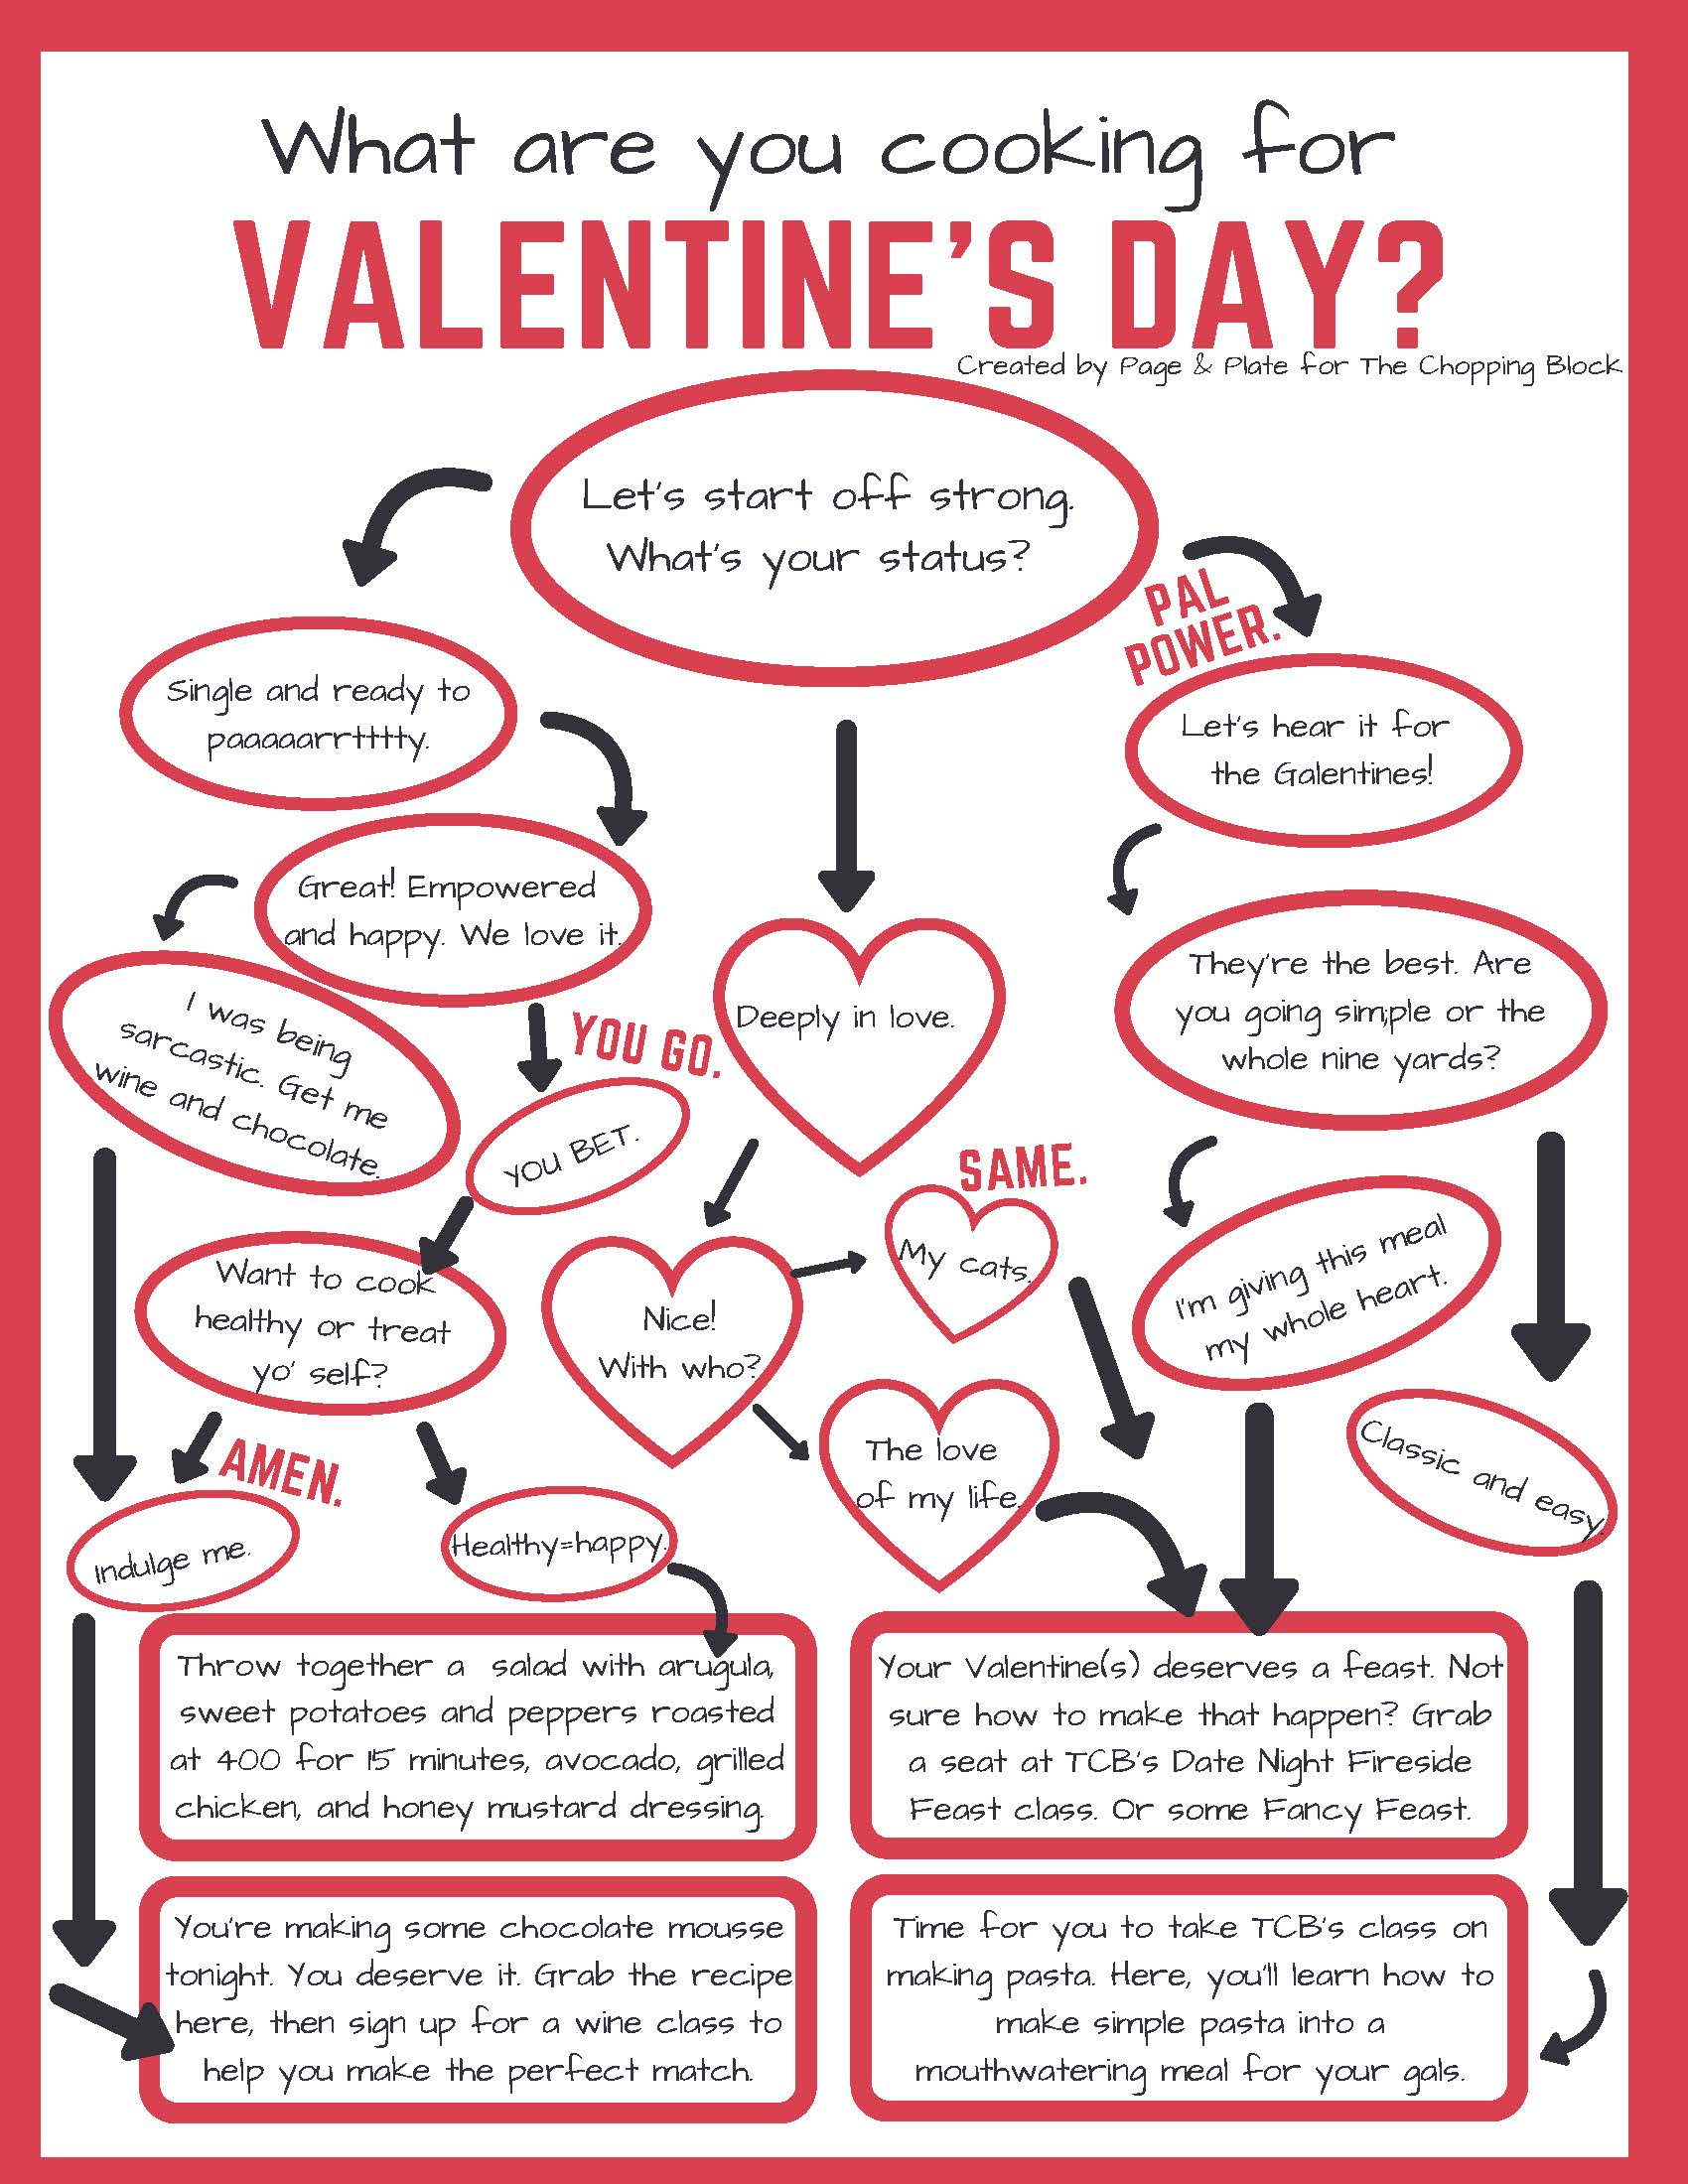 What are you cooking for Valentine's Day_ (4)